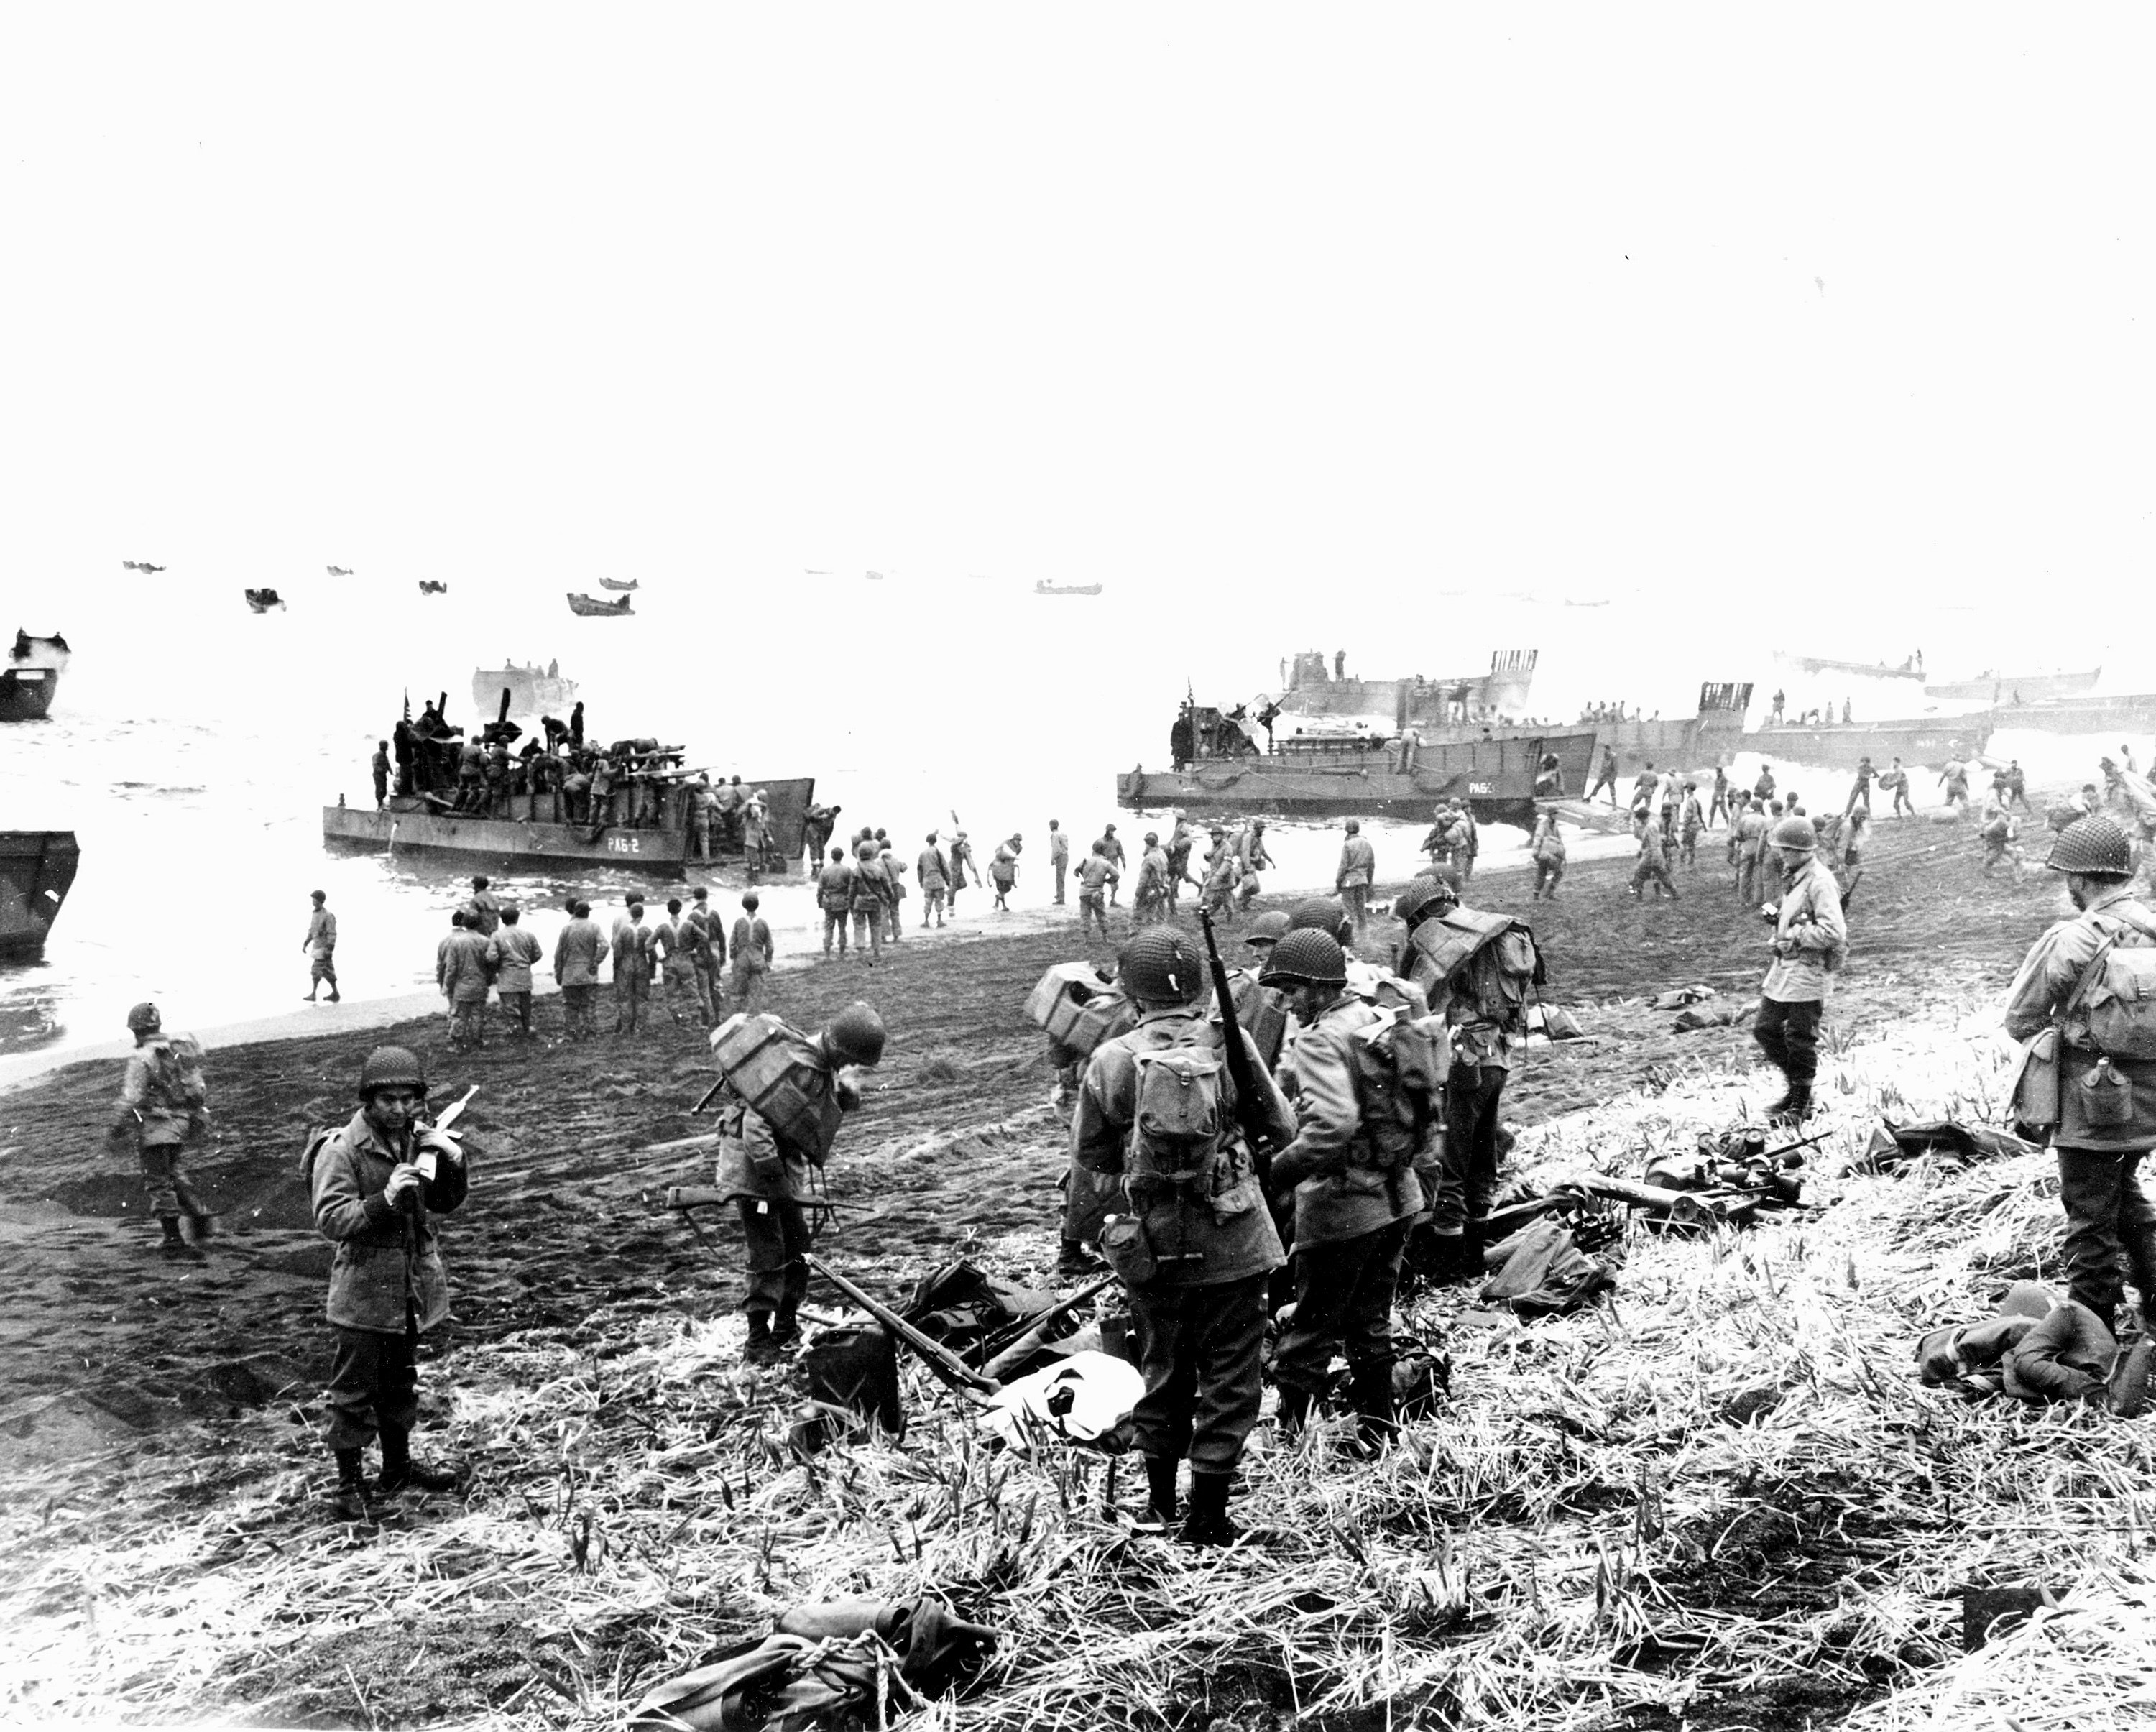 AP WAS THERE: 75 years ago, reporter lands on Attu Island